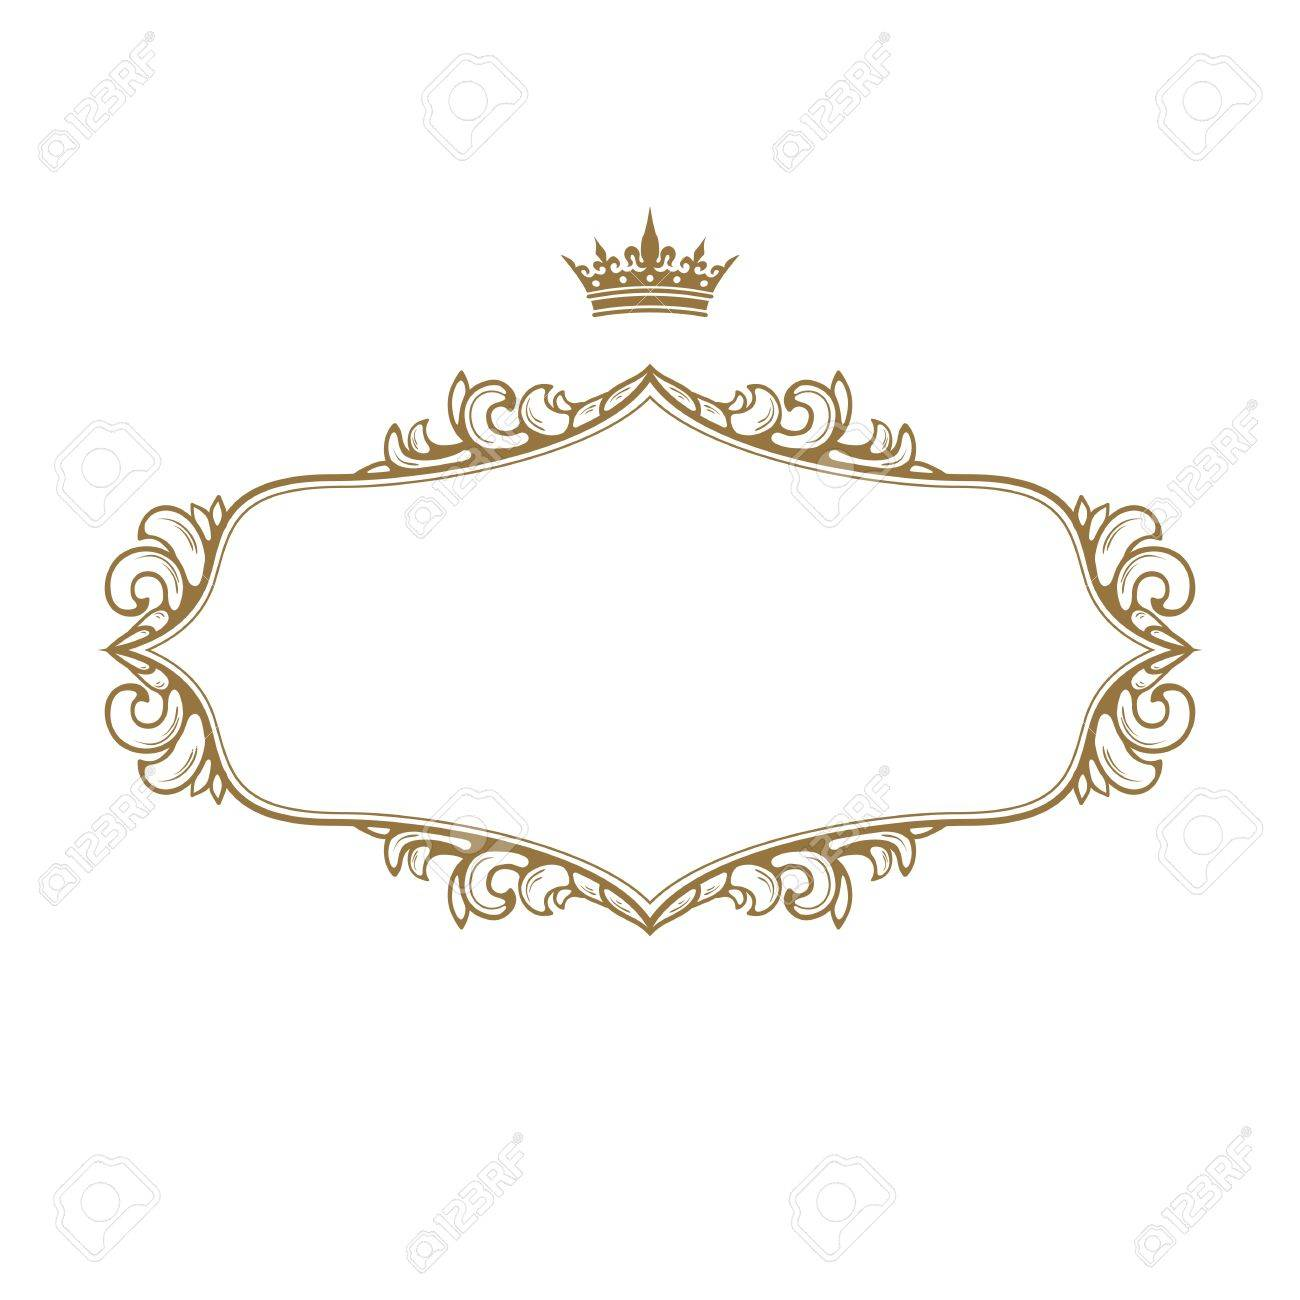 elegant royal frame with crown isolated on white background stock vector 18933972